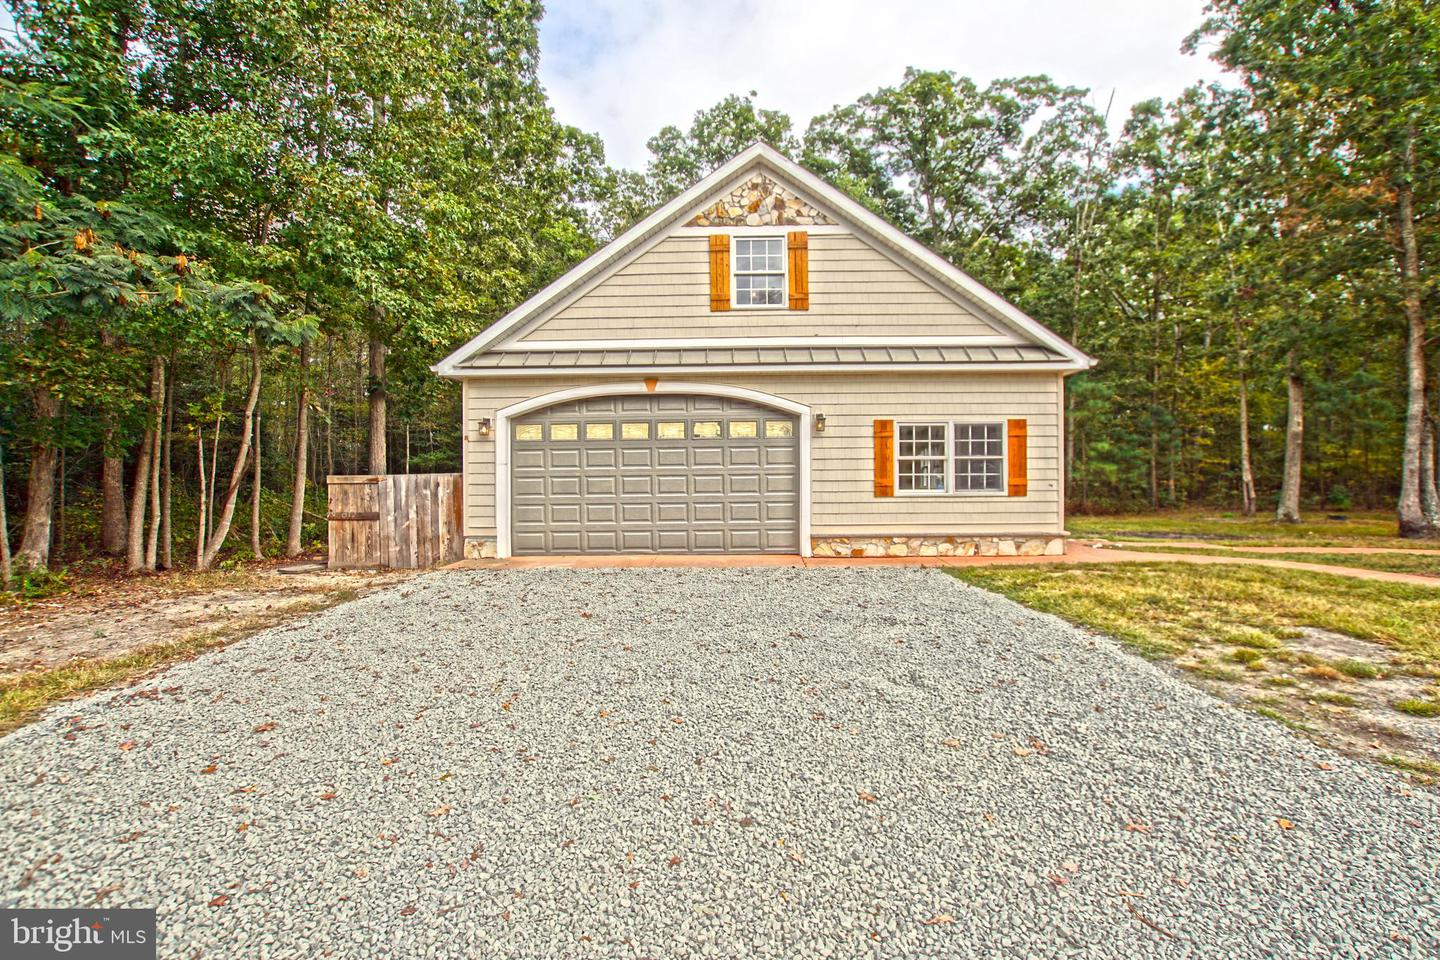 DESU149642-302121578678-2019-11-22-14-20-52 22415 Lawson Rd | Georgetown, DE Real Estate For Sale | MLS# Desu149642  - Lee Ann Group